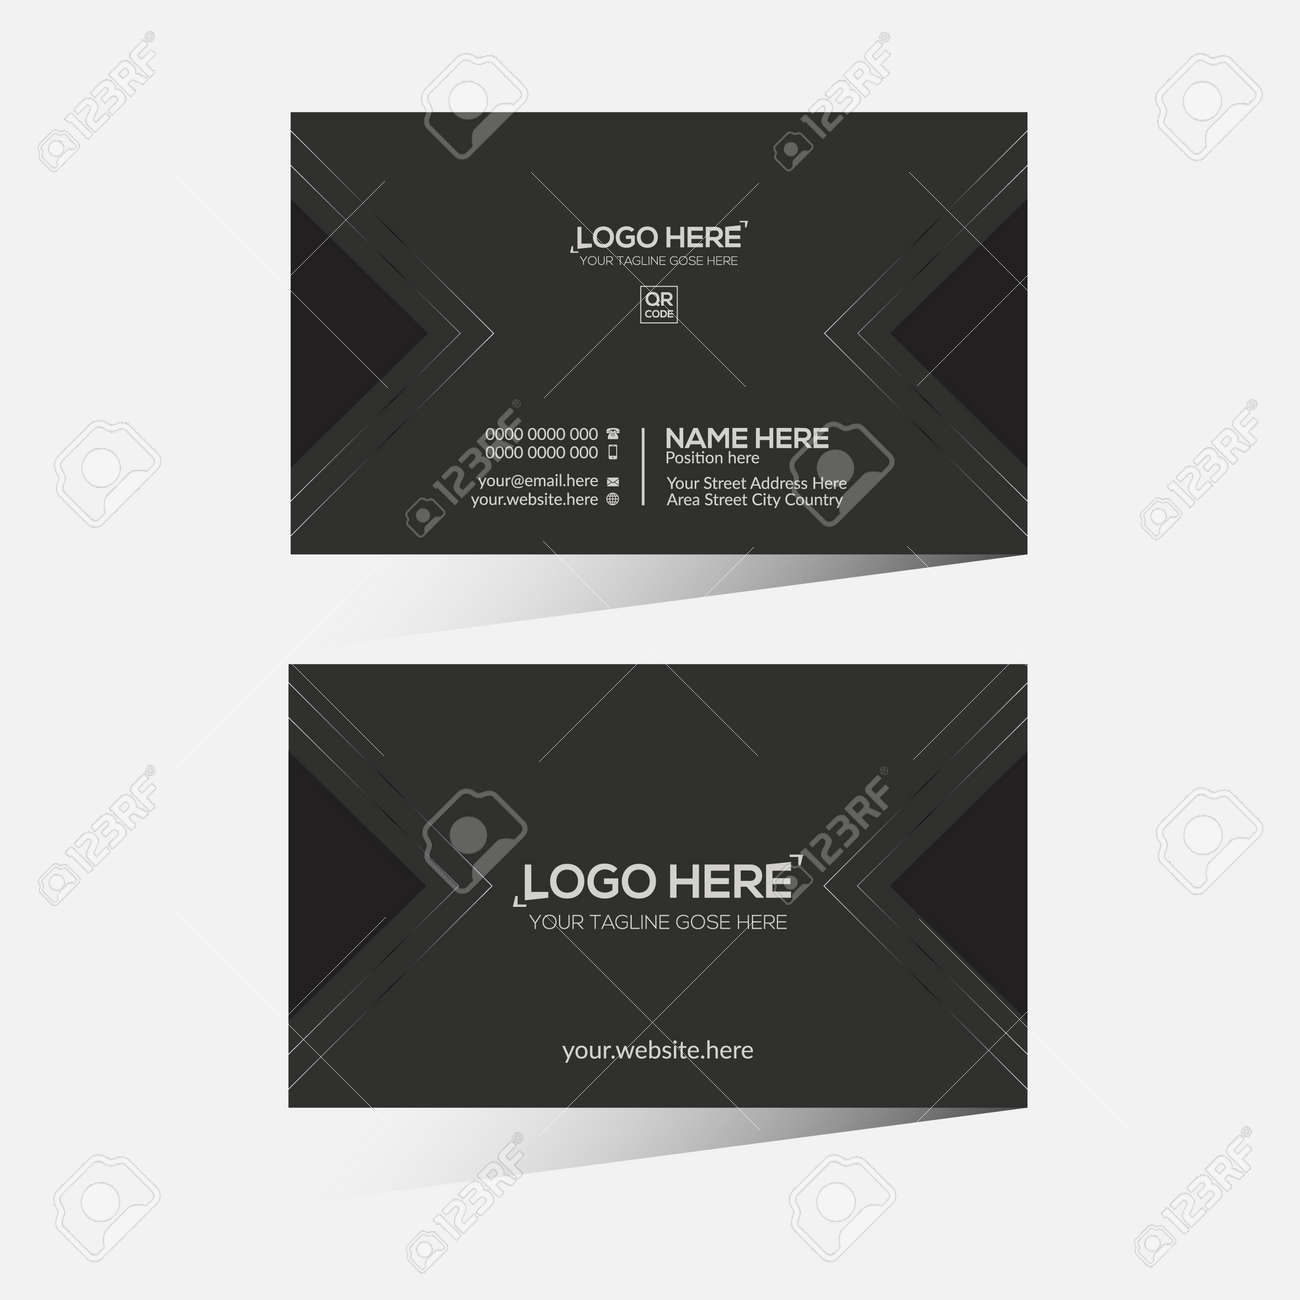 black colored vector business card design for any company use - 172189474